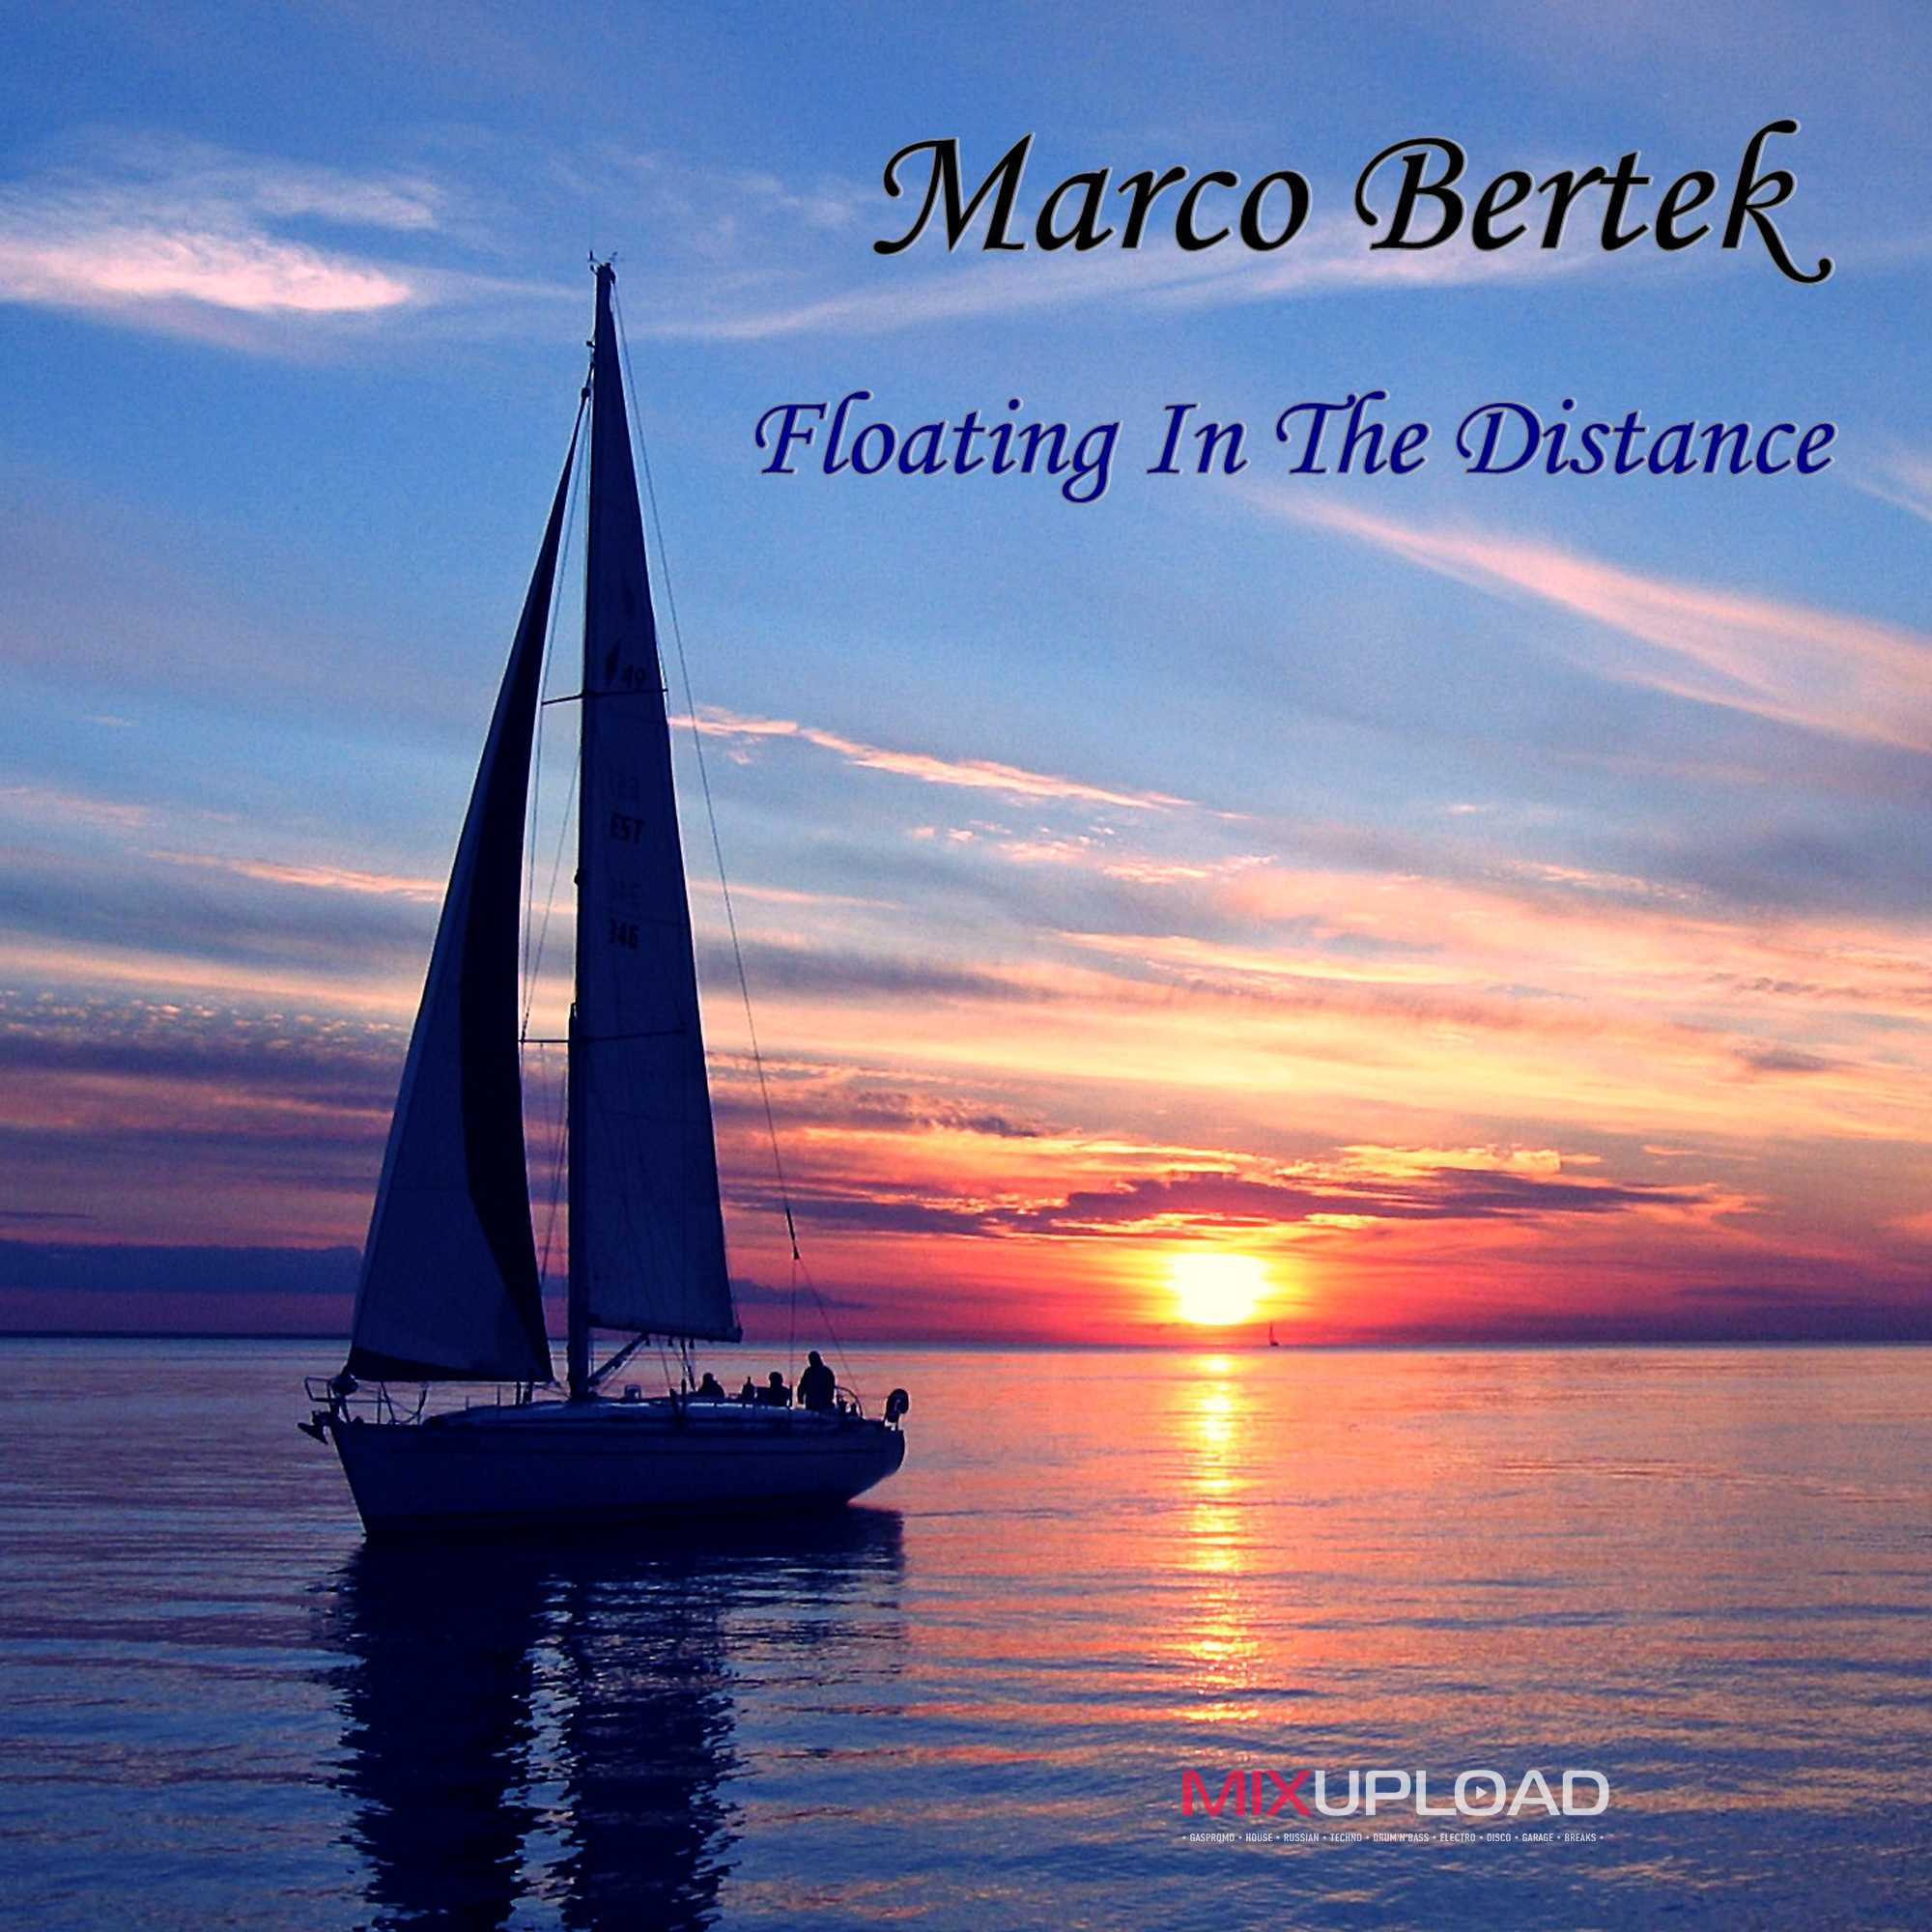 Marco Bertek - Floating In The Distance (Original mix)